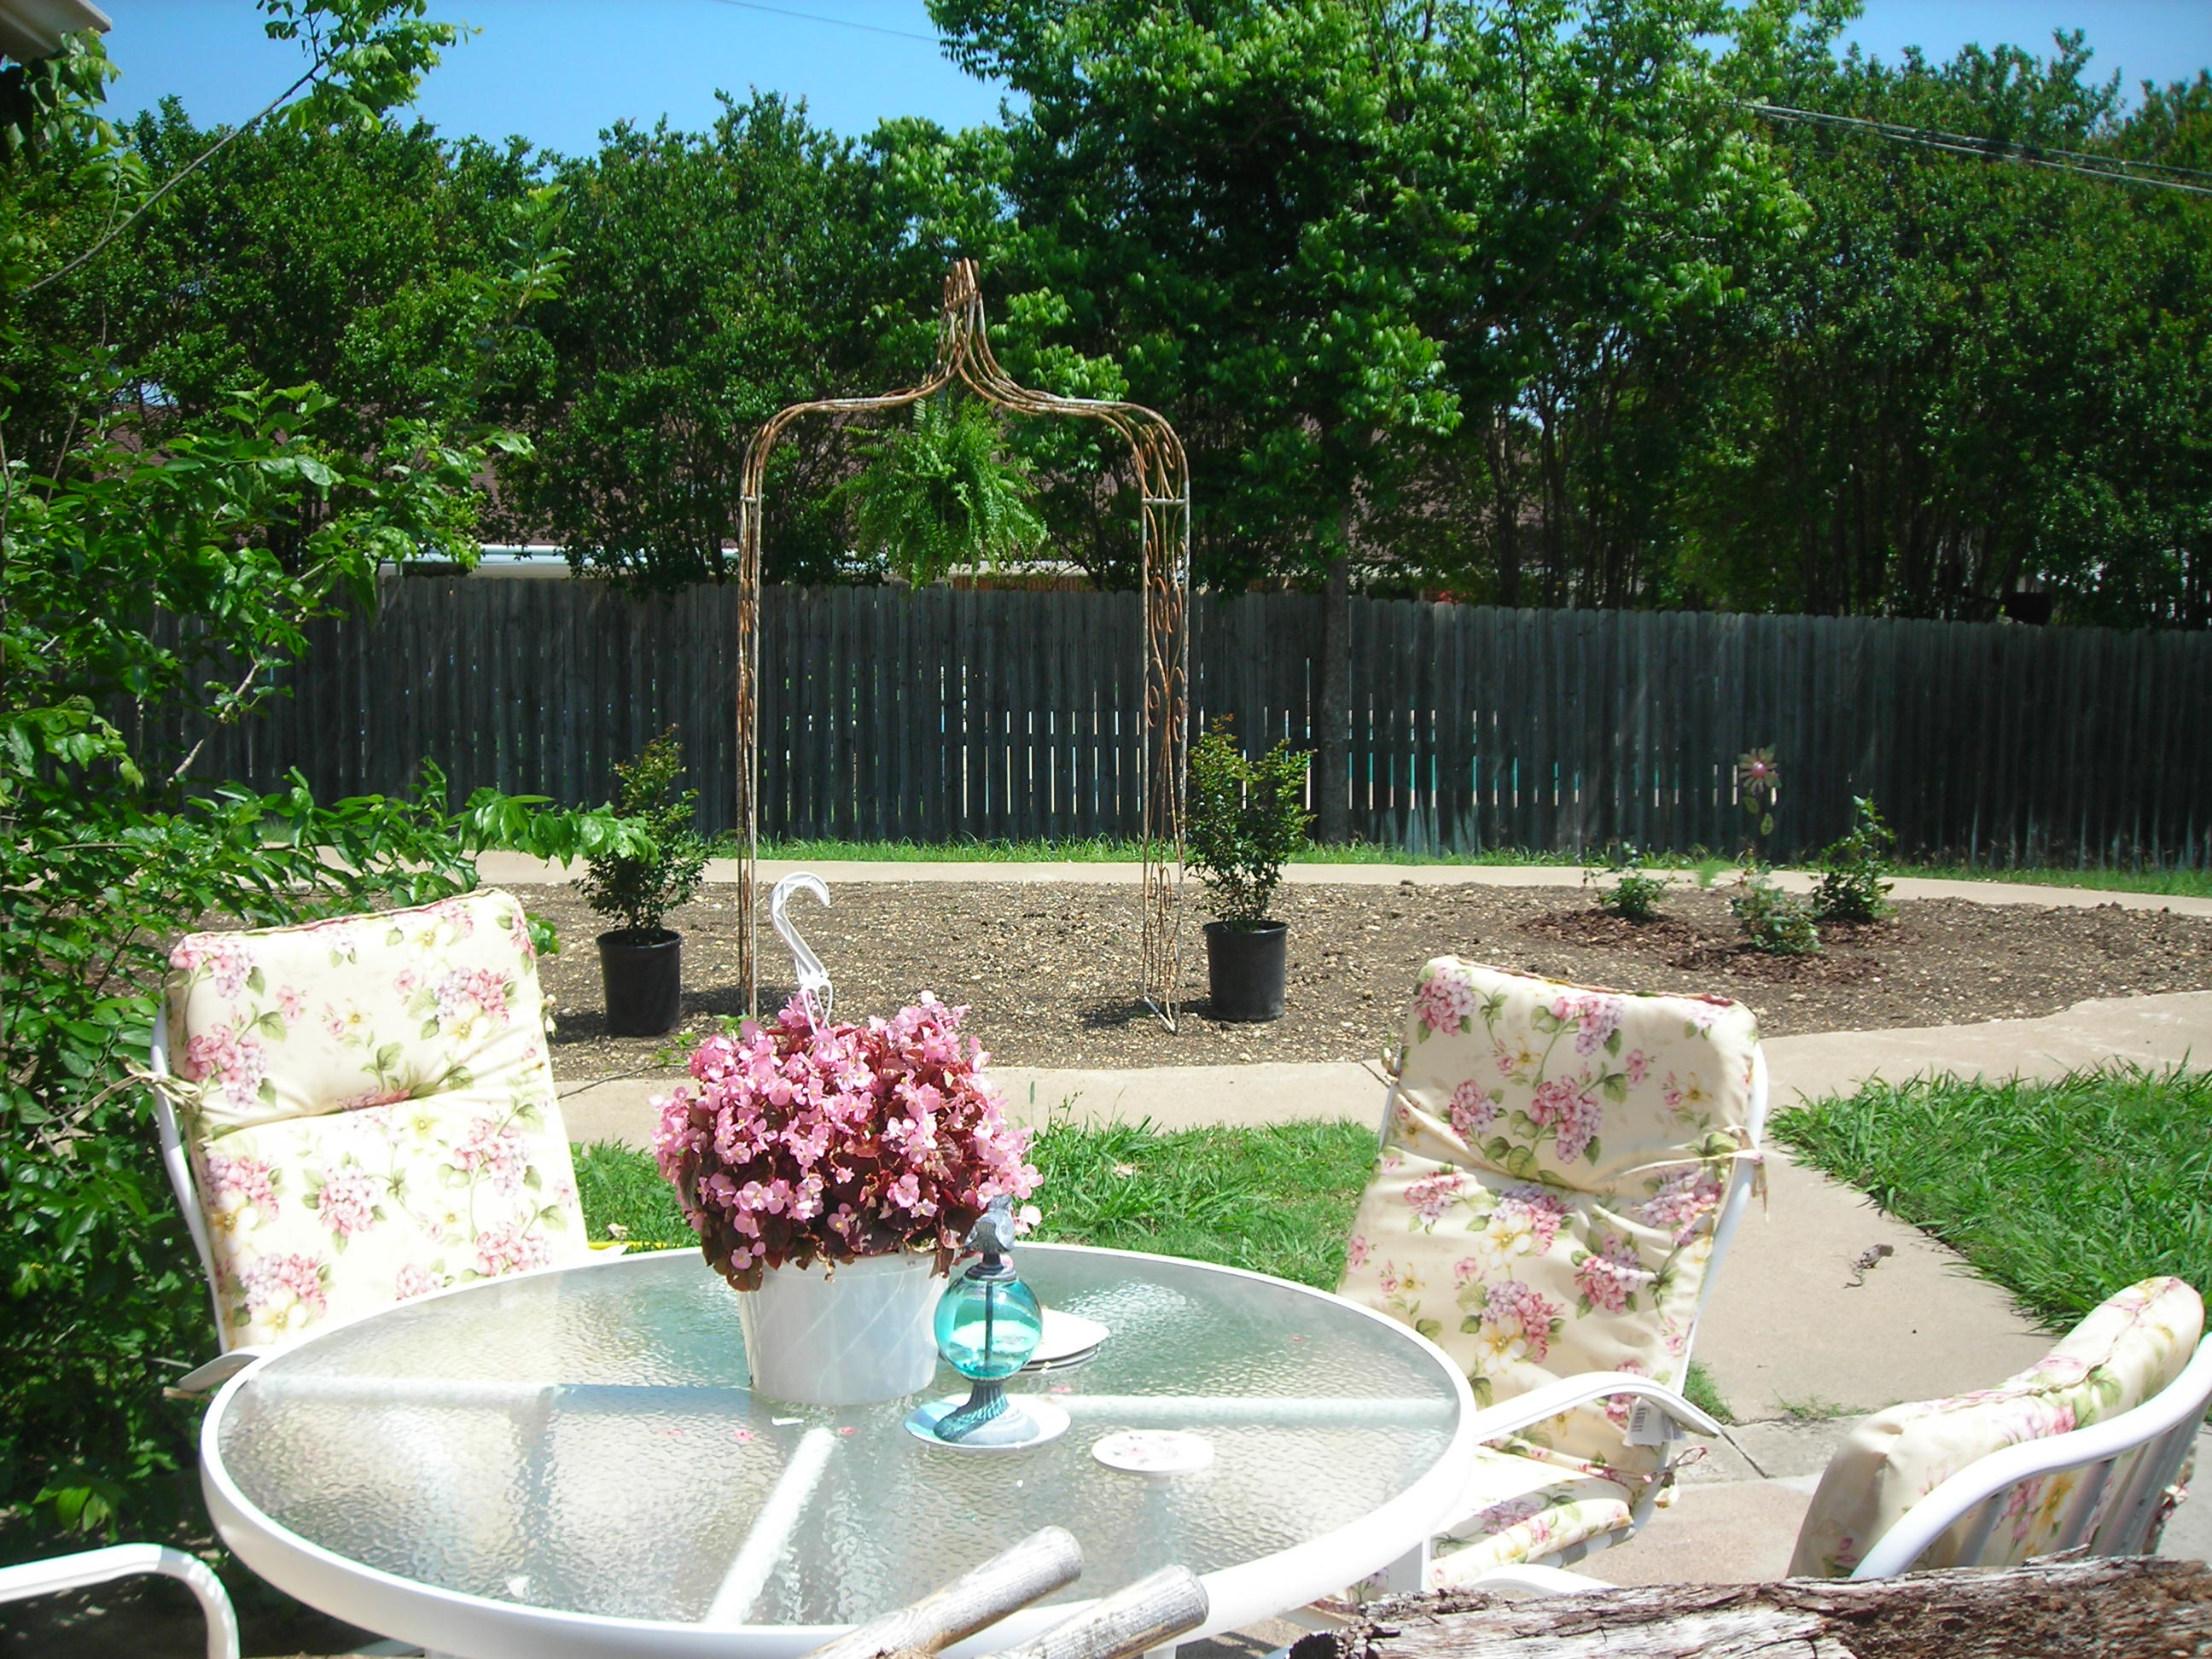 my patio table with new cushions and lovely pink begonias ... with a view of The Garden ... love that arch!